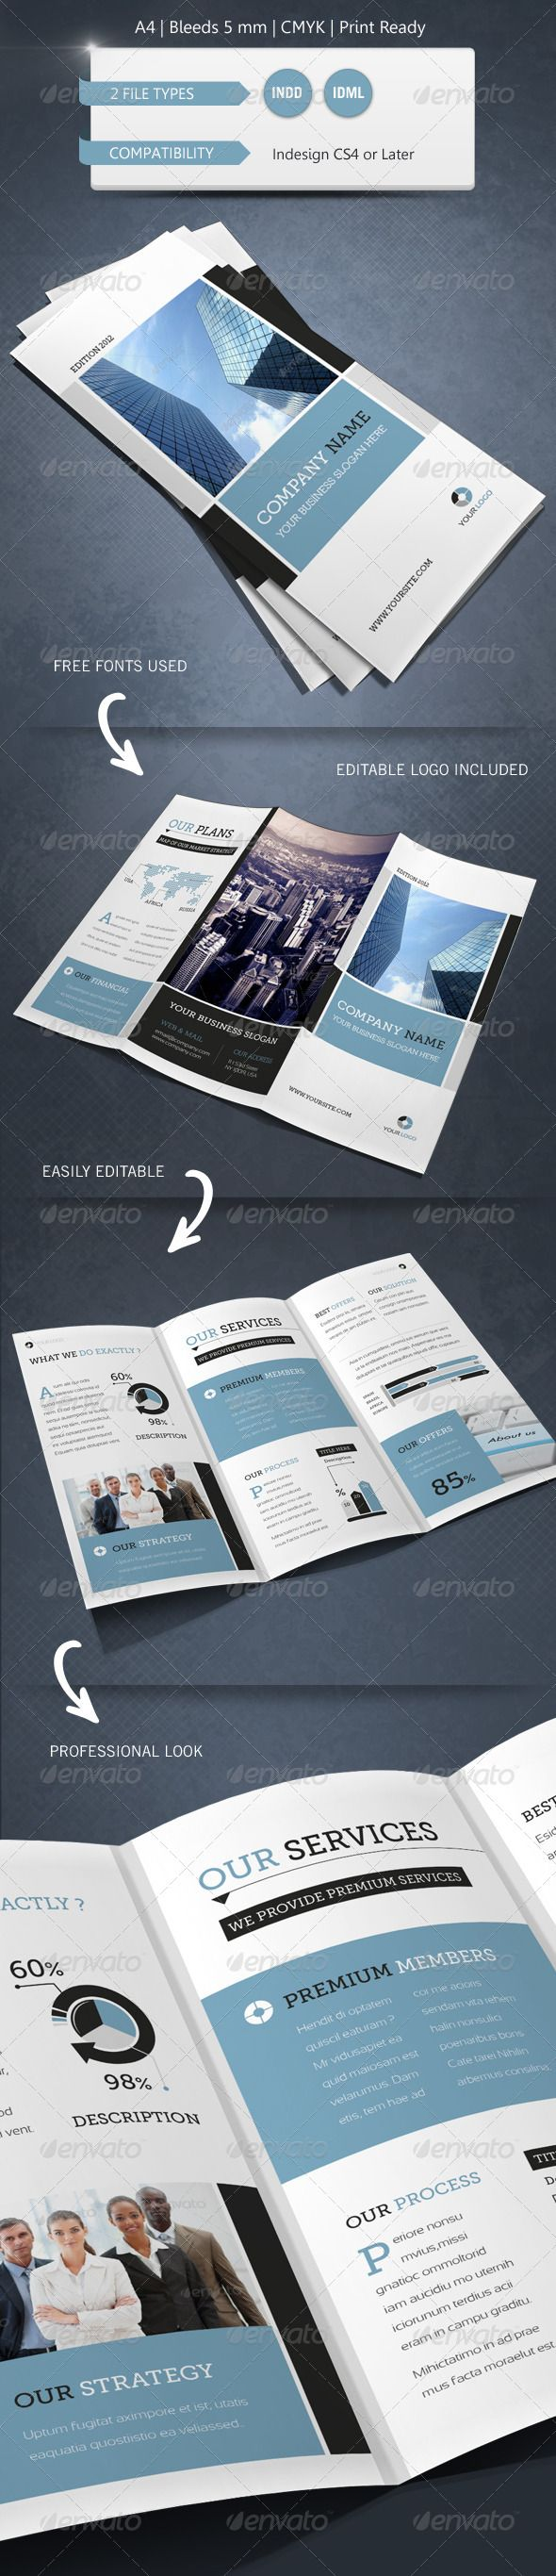 Modern & Corporate Trifold Brochure Template - Brochures Print Templates